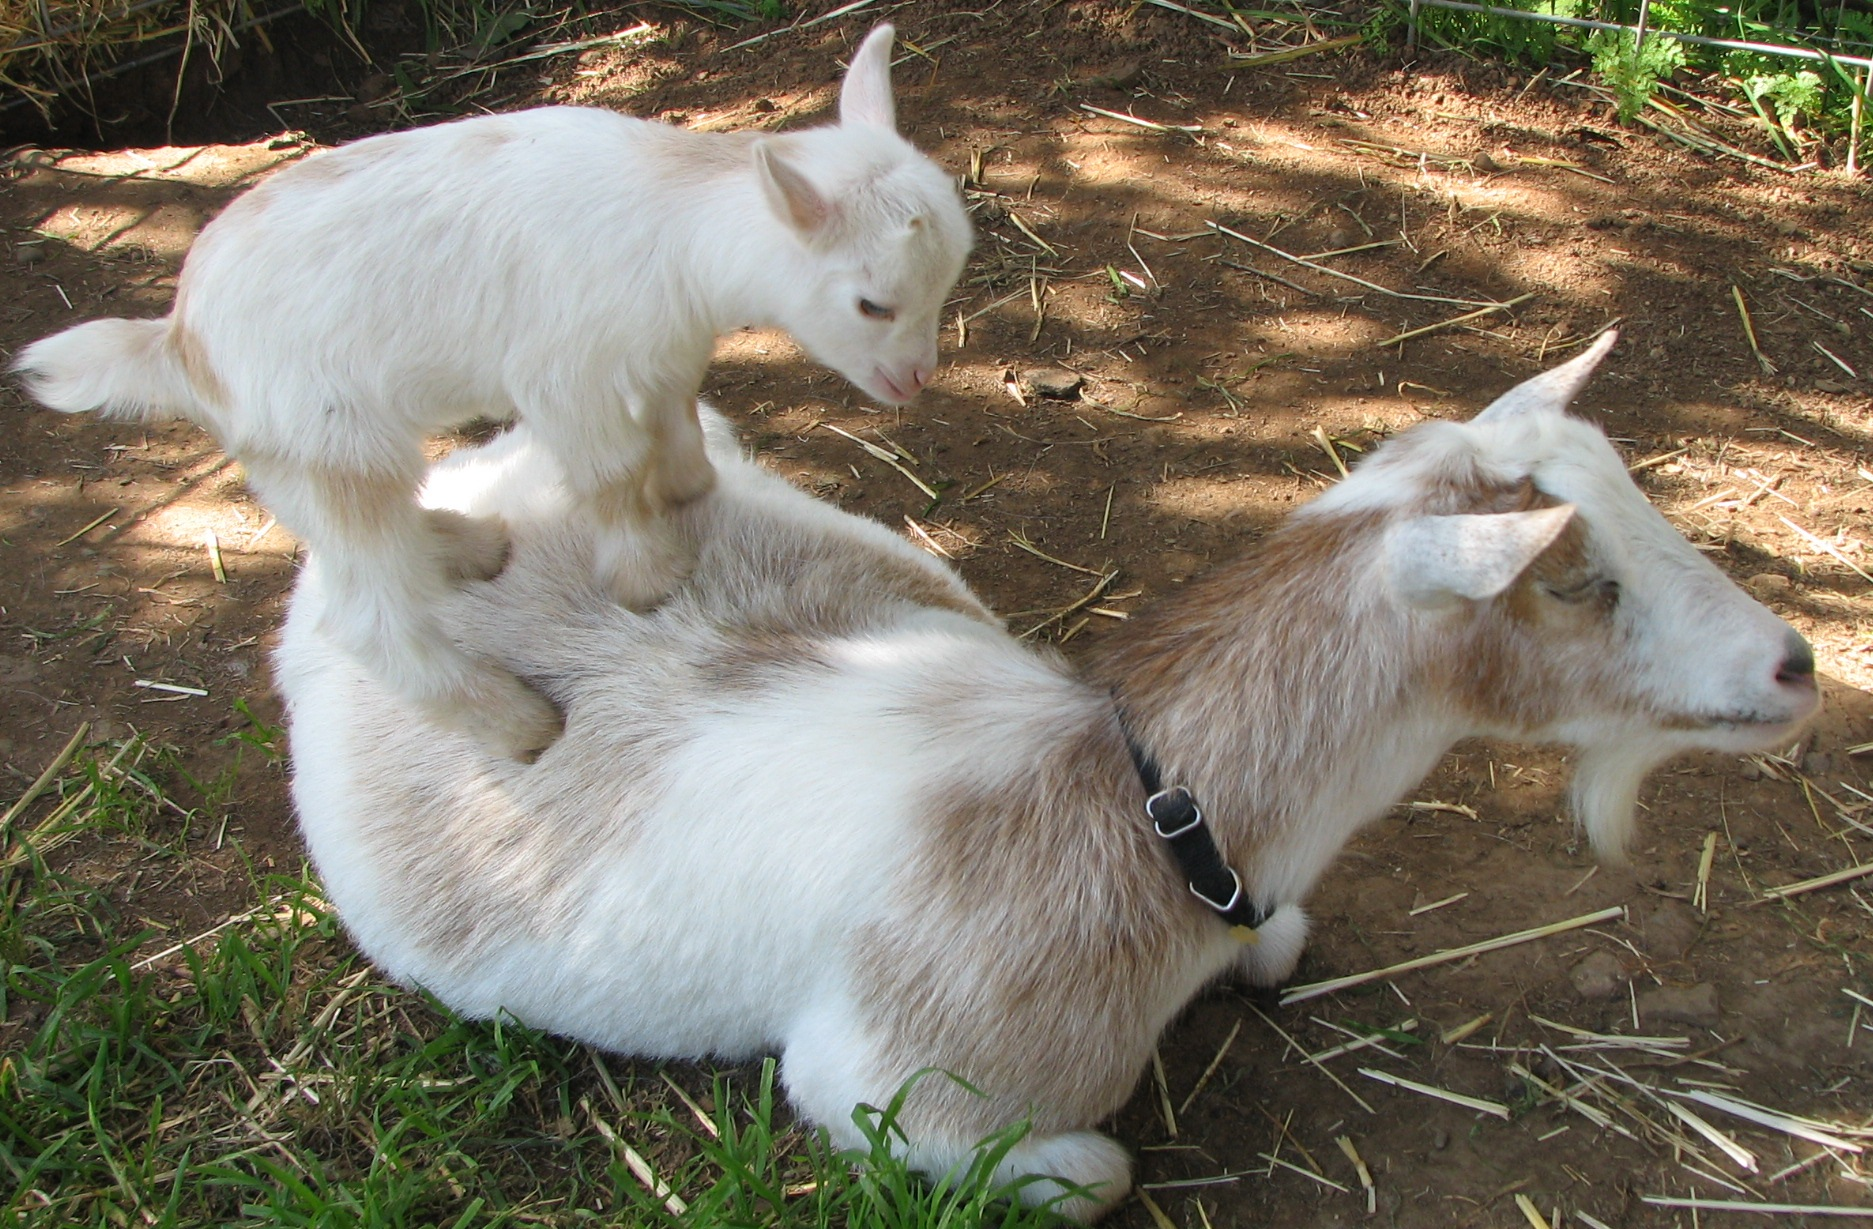 lamancha nubian goats - photo #3